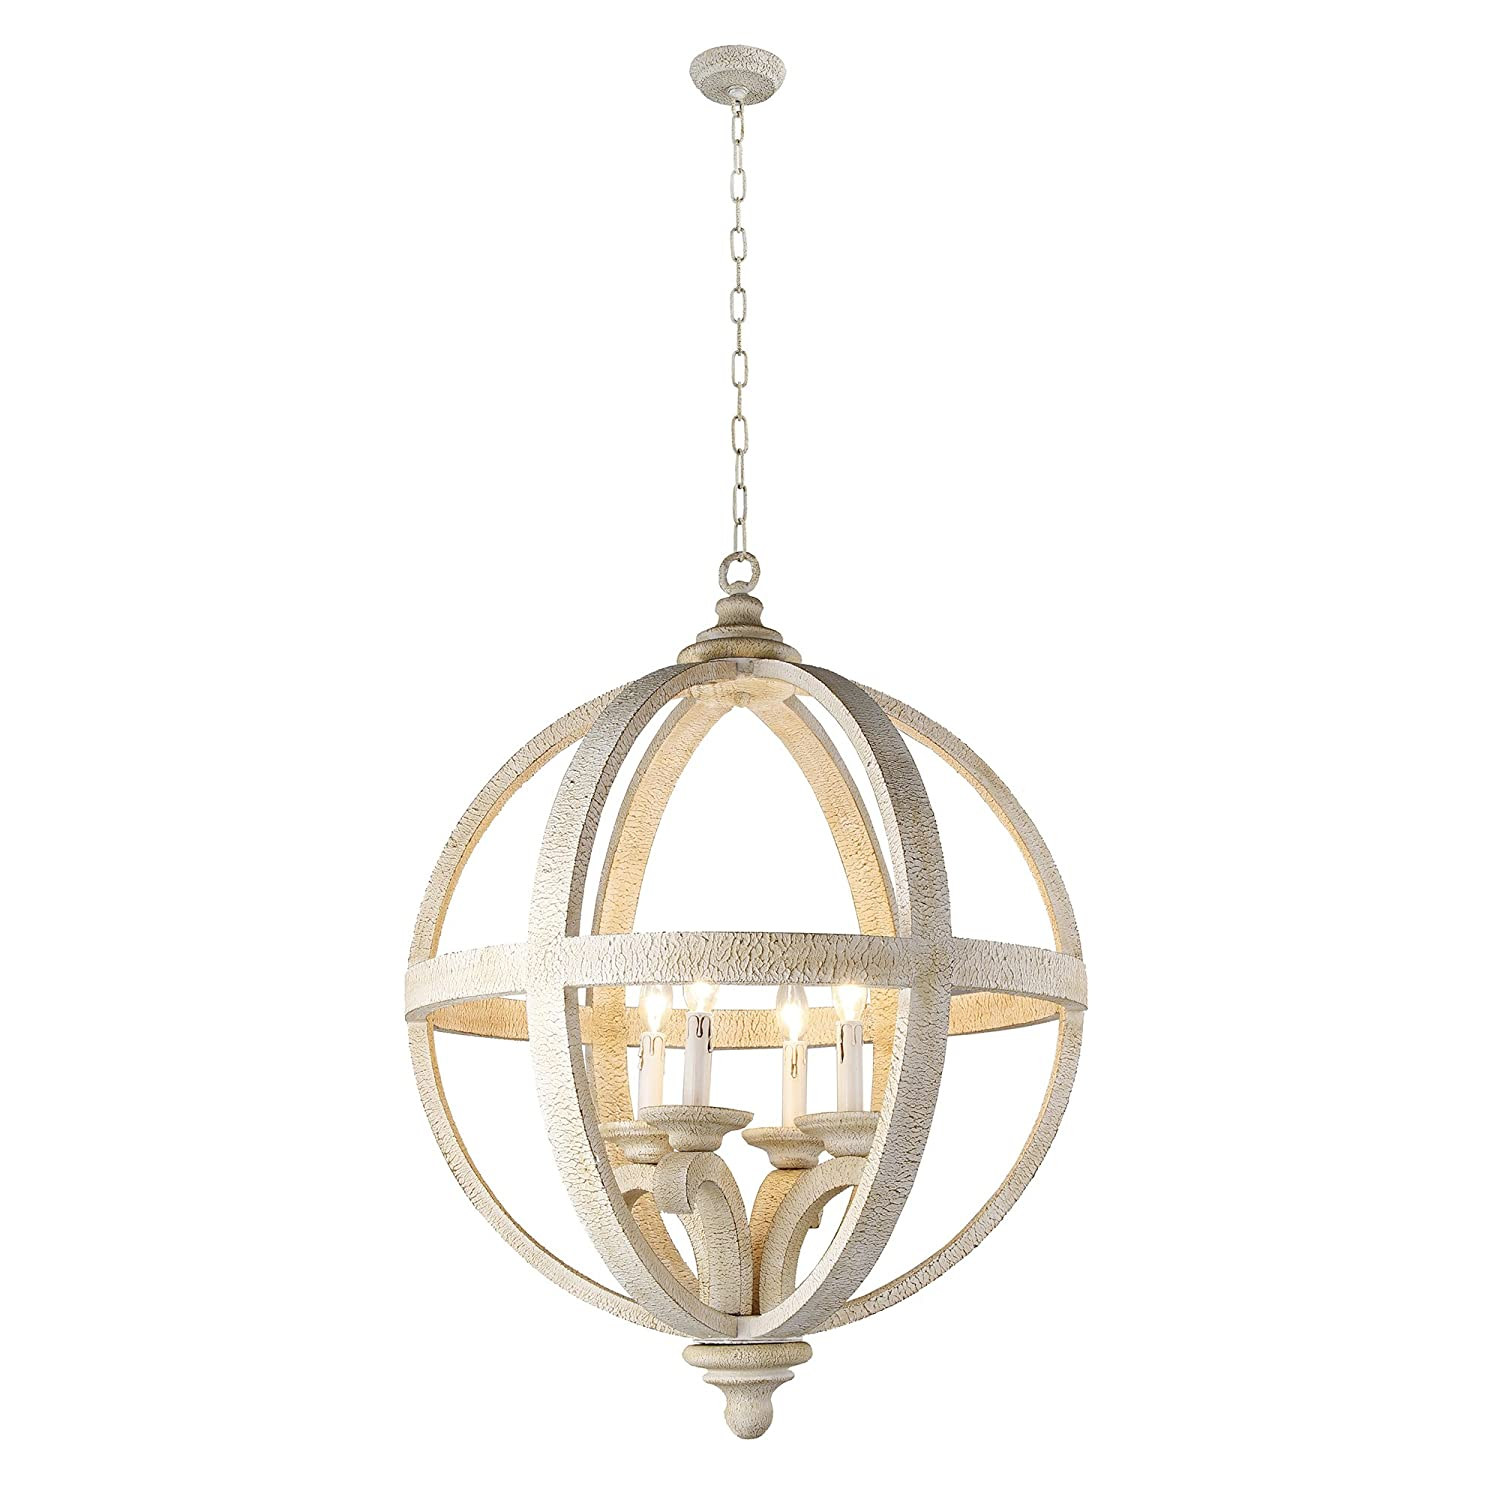 Y decor lz3225 4s hercules 4 light chandelier in wooden globe frame and neutral finish